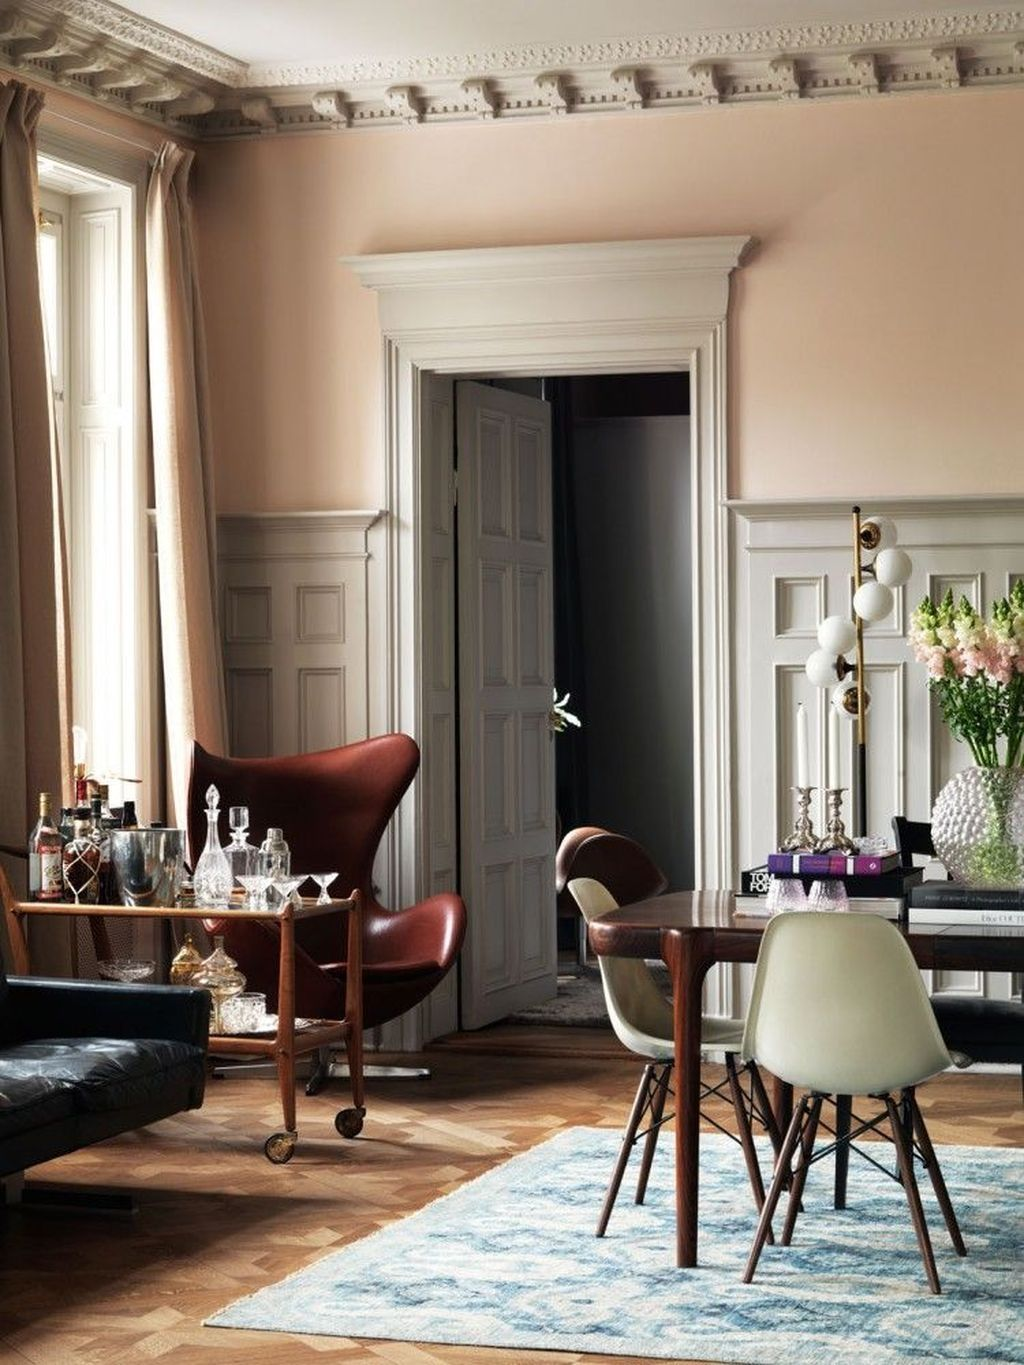 Awesome Dining Rooms From Hulsta: 46 Awesome Scandinavian Dining Room Design Ideas With